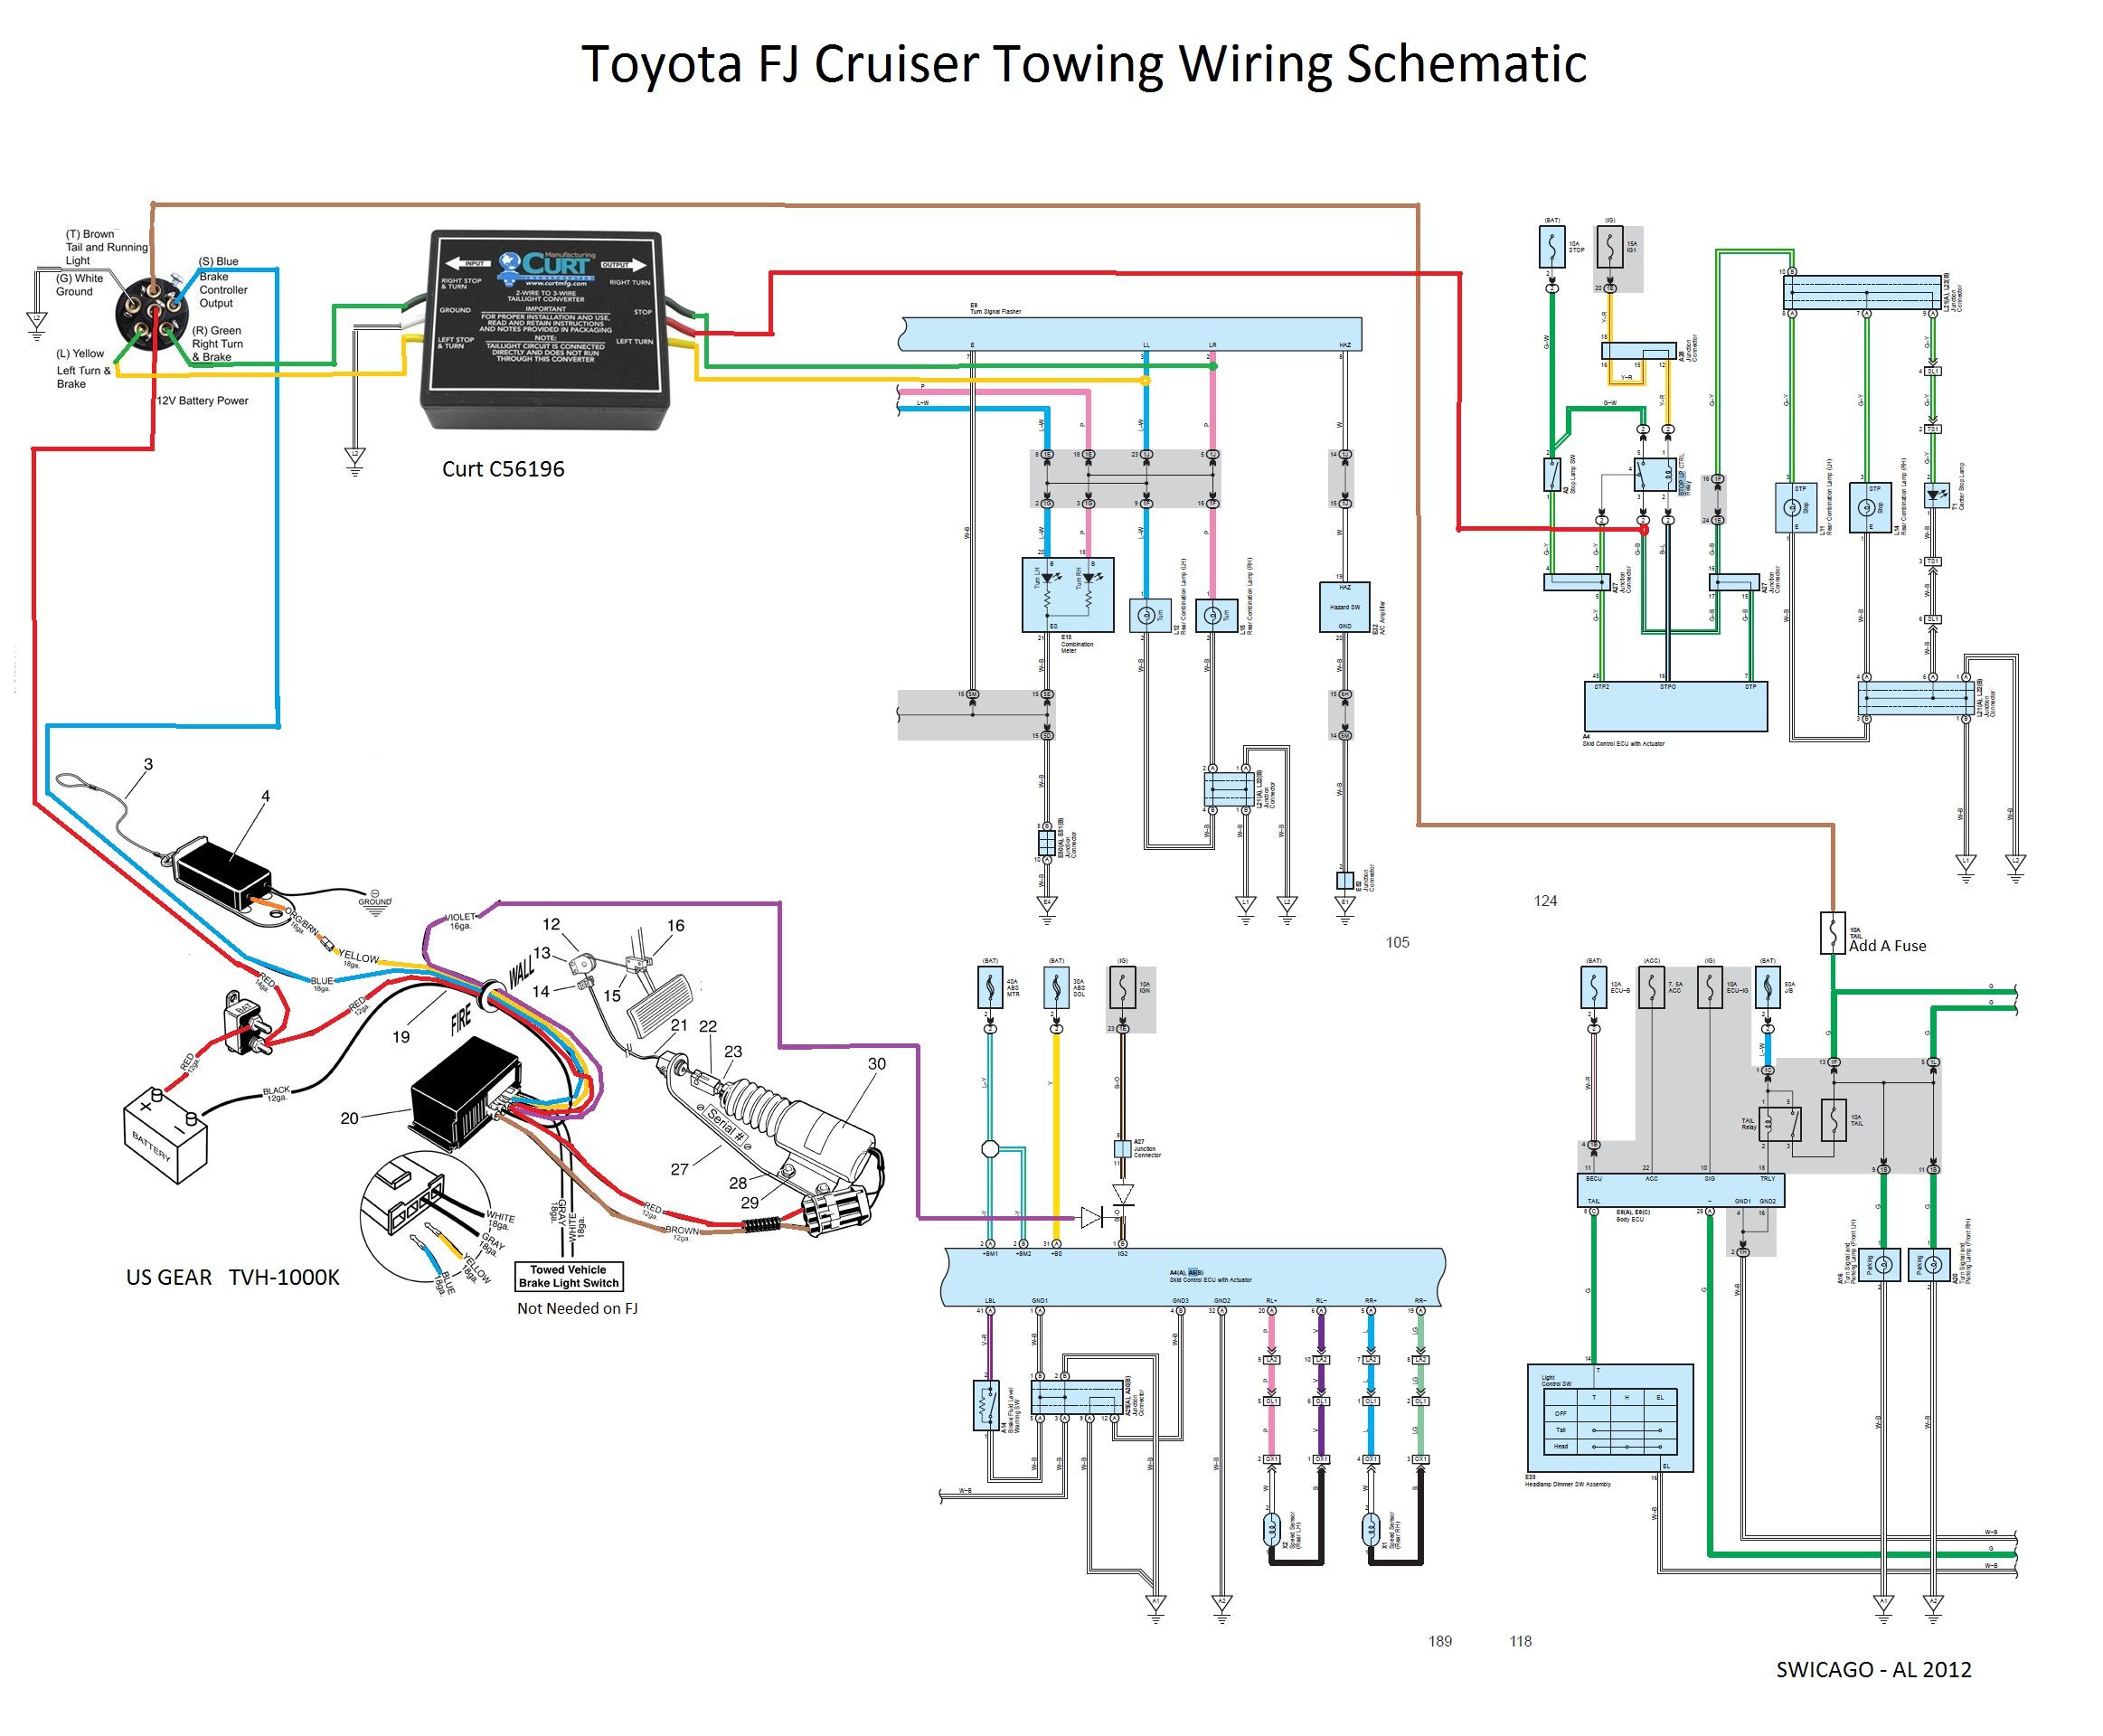 TowSchematic flat tow 6mt (yes it can be done) toyota fj cruiser forum  at reclaimingppi.co